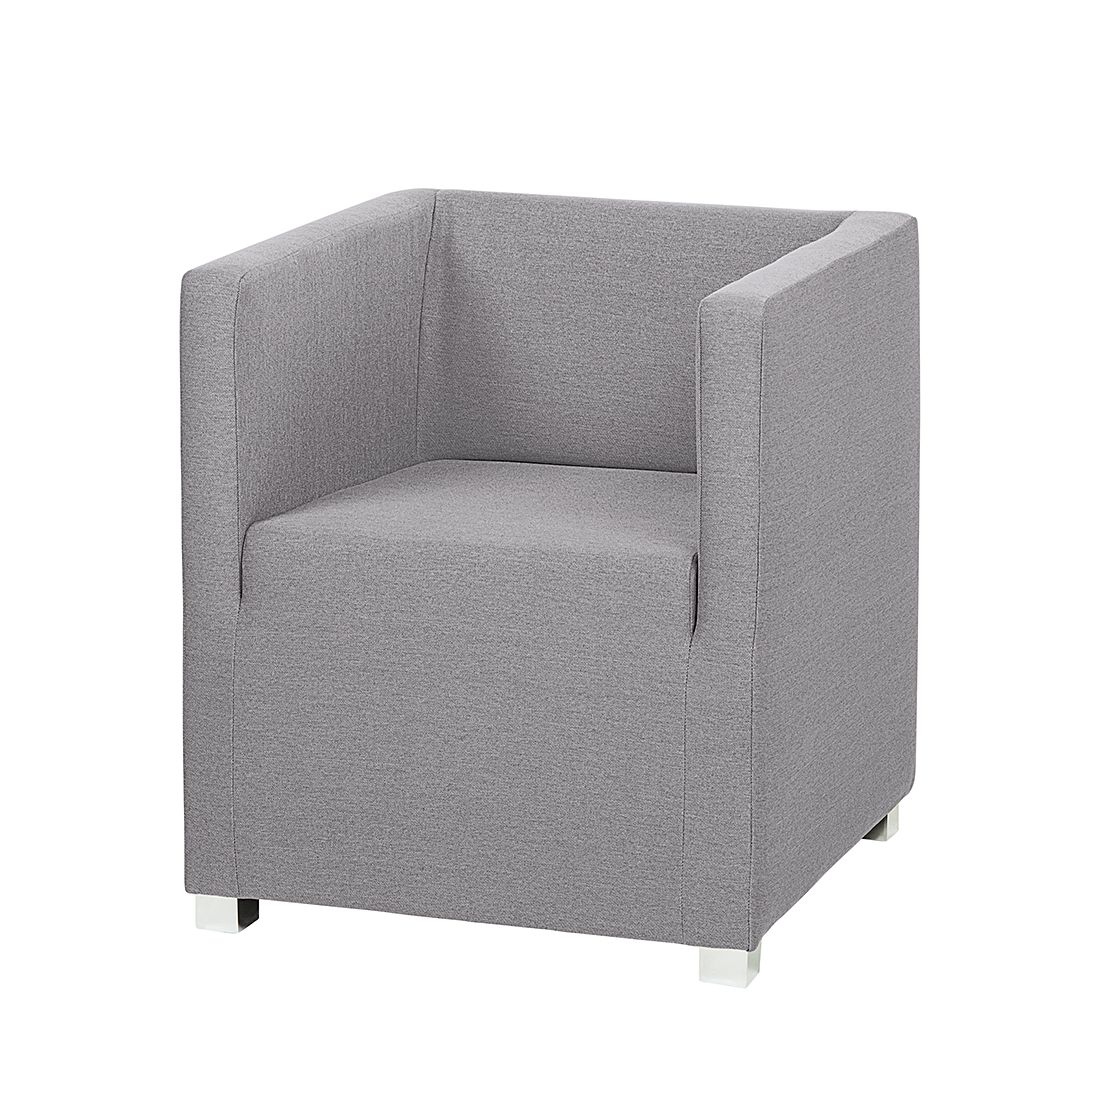 Fauteuil Carmen - Tissu gris, mooved